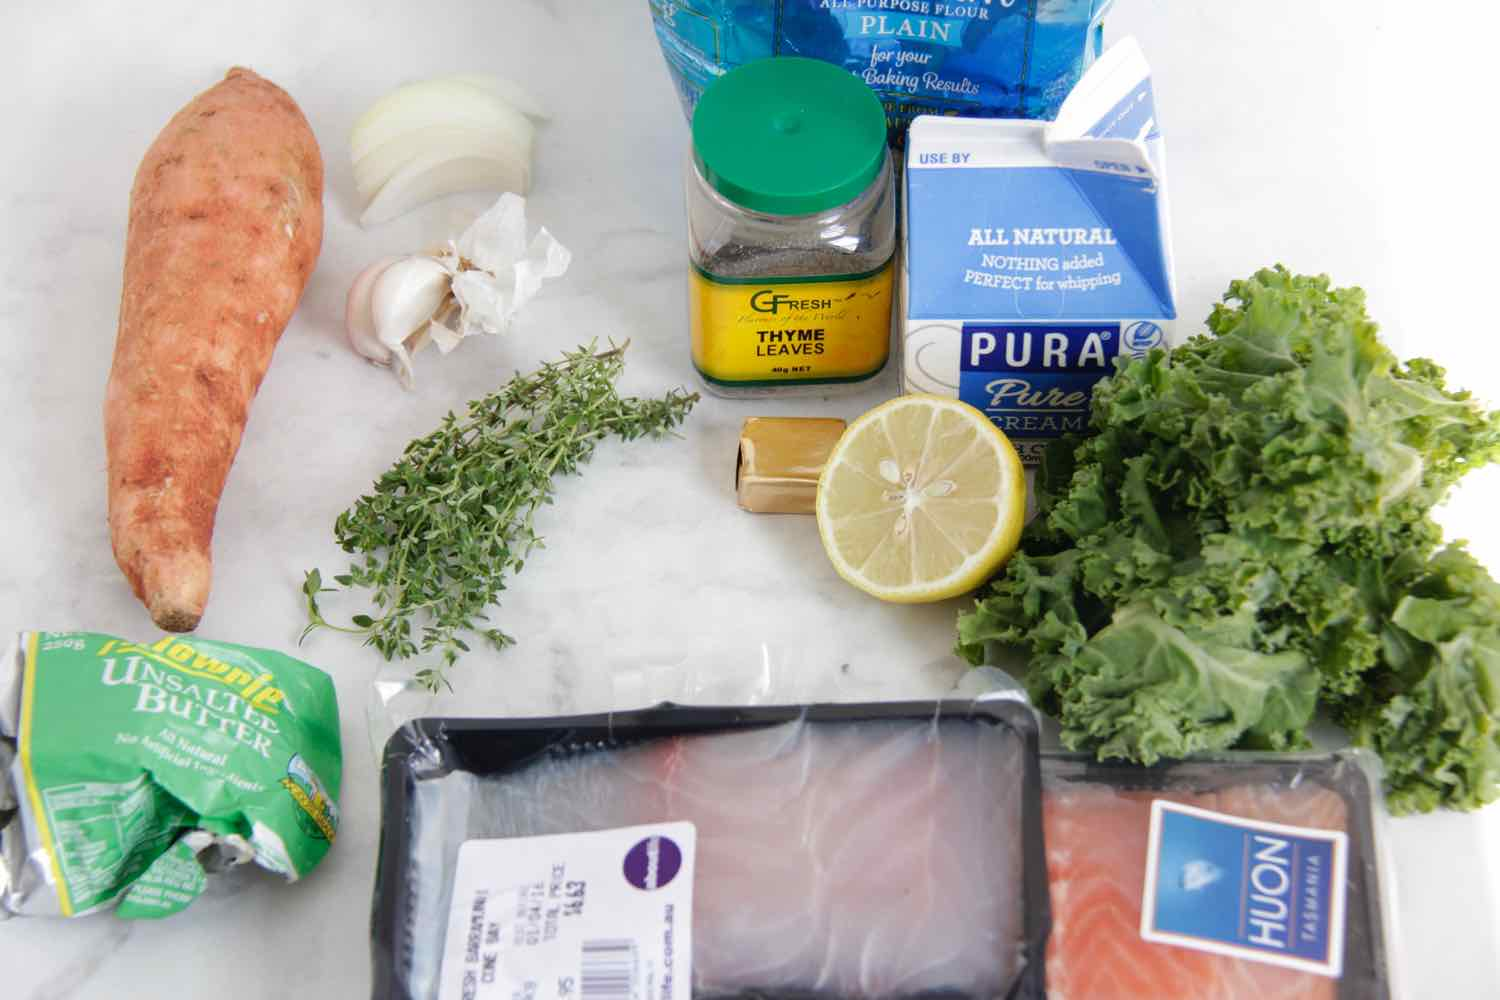 Getting ready to make fish pie